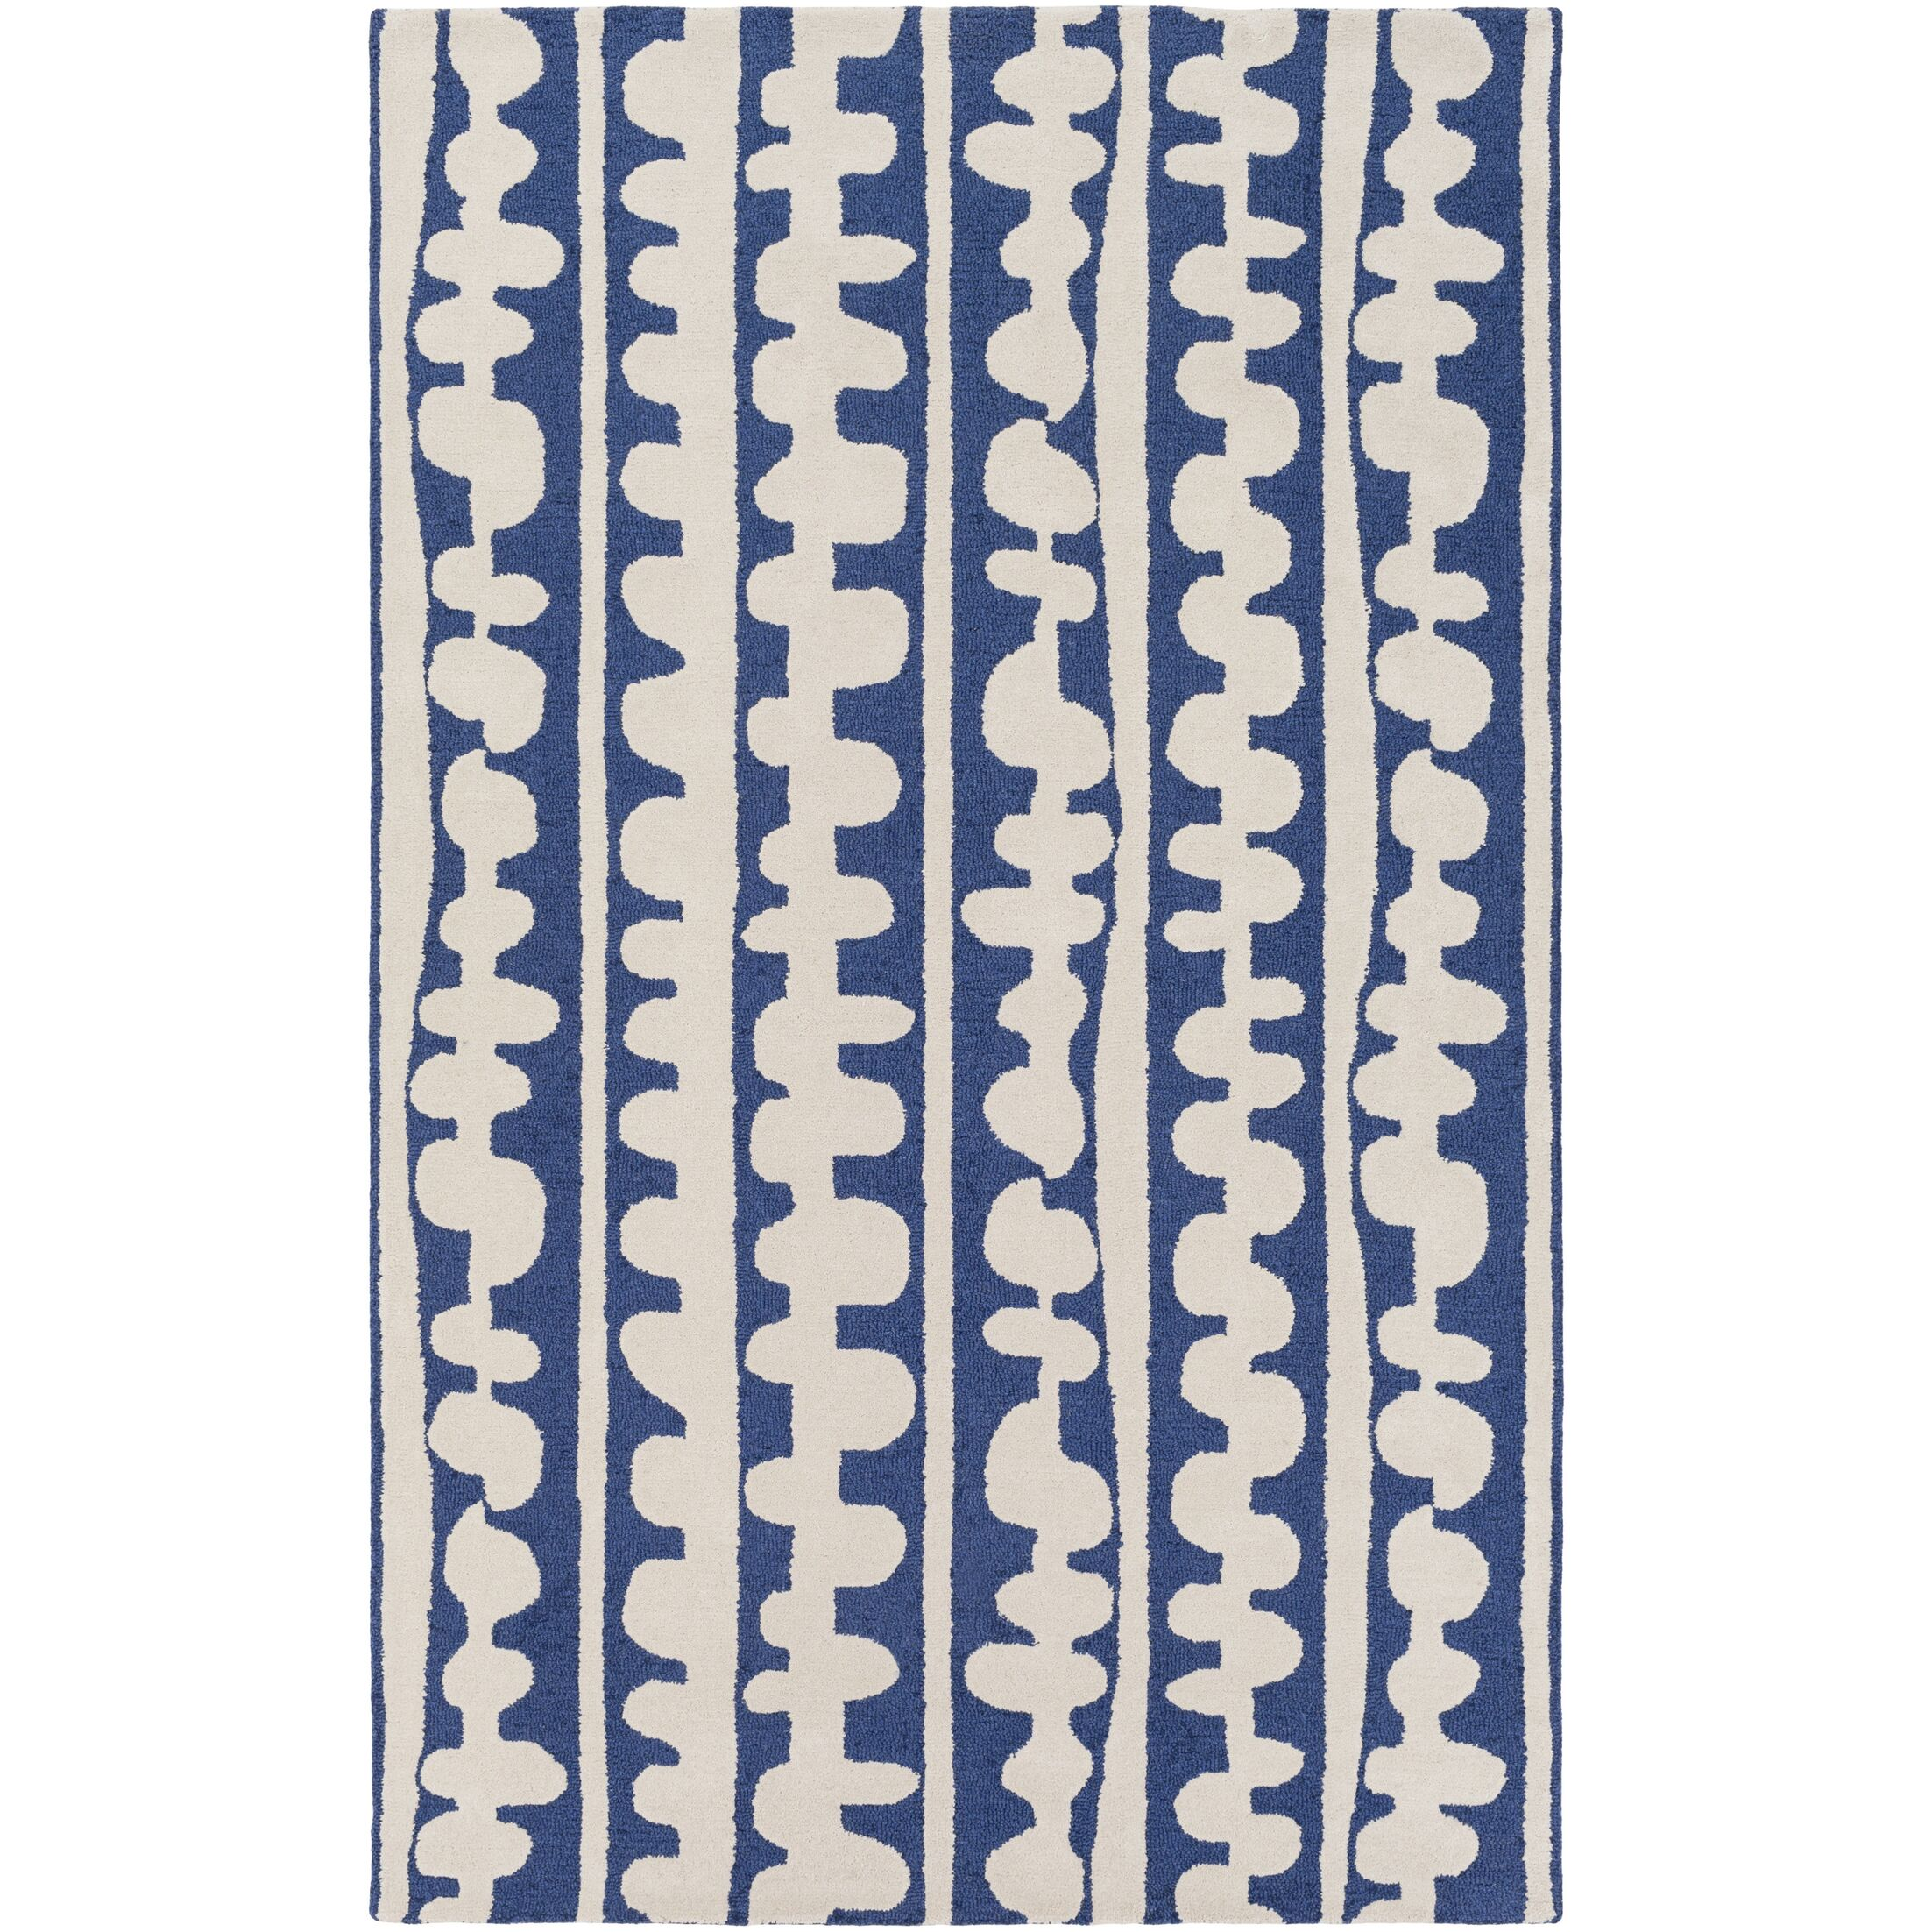 Decorativa Hand-Tufted Blue/Neutral Area Rug Rug Size: Rectangle 3'3